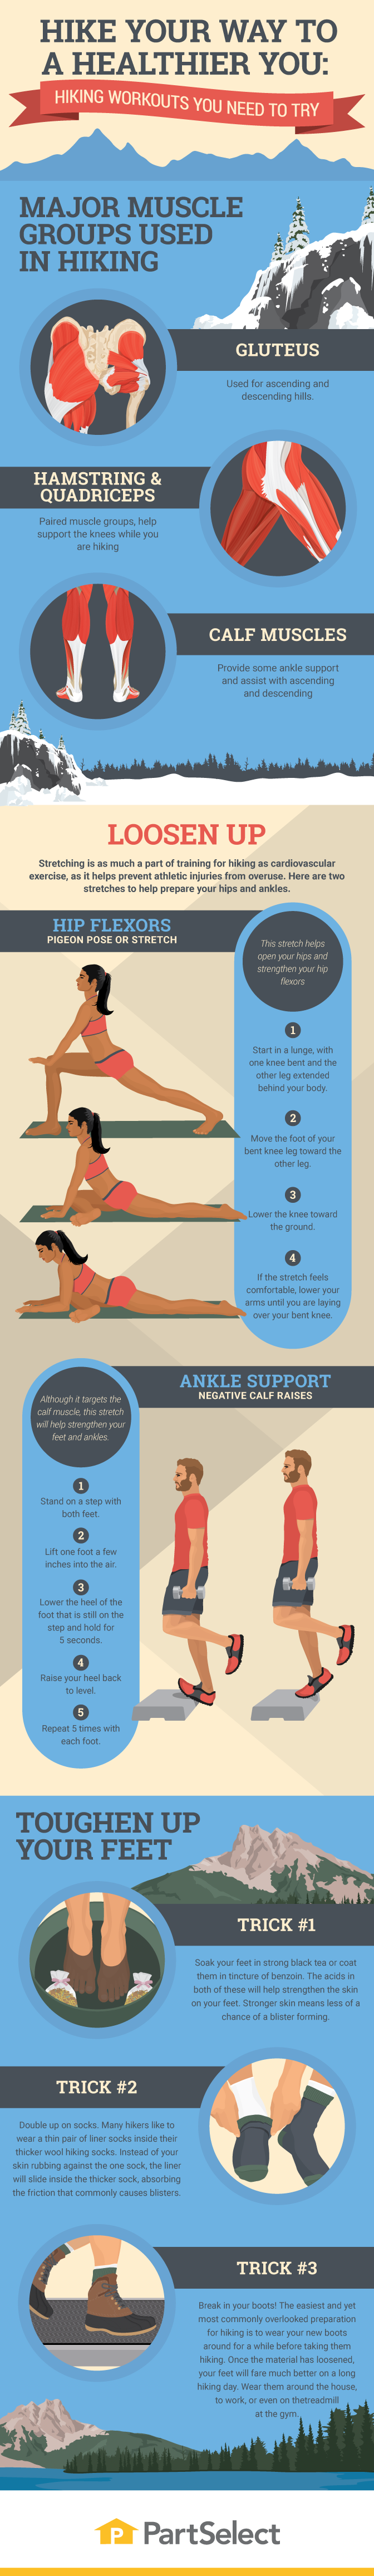 Hiking - Ways to Engage More Muscles